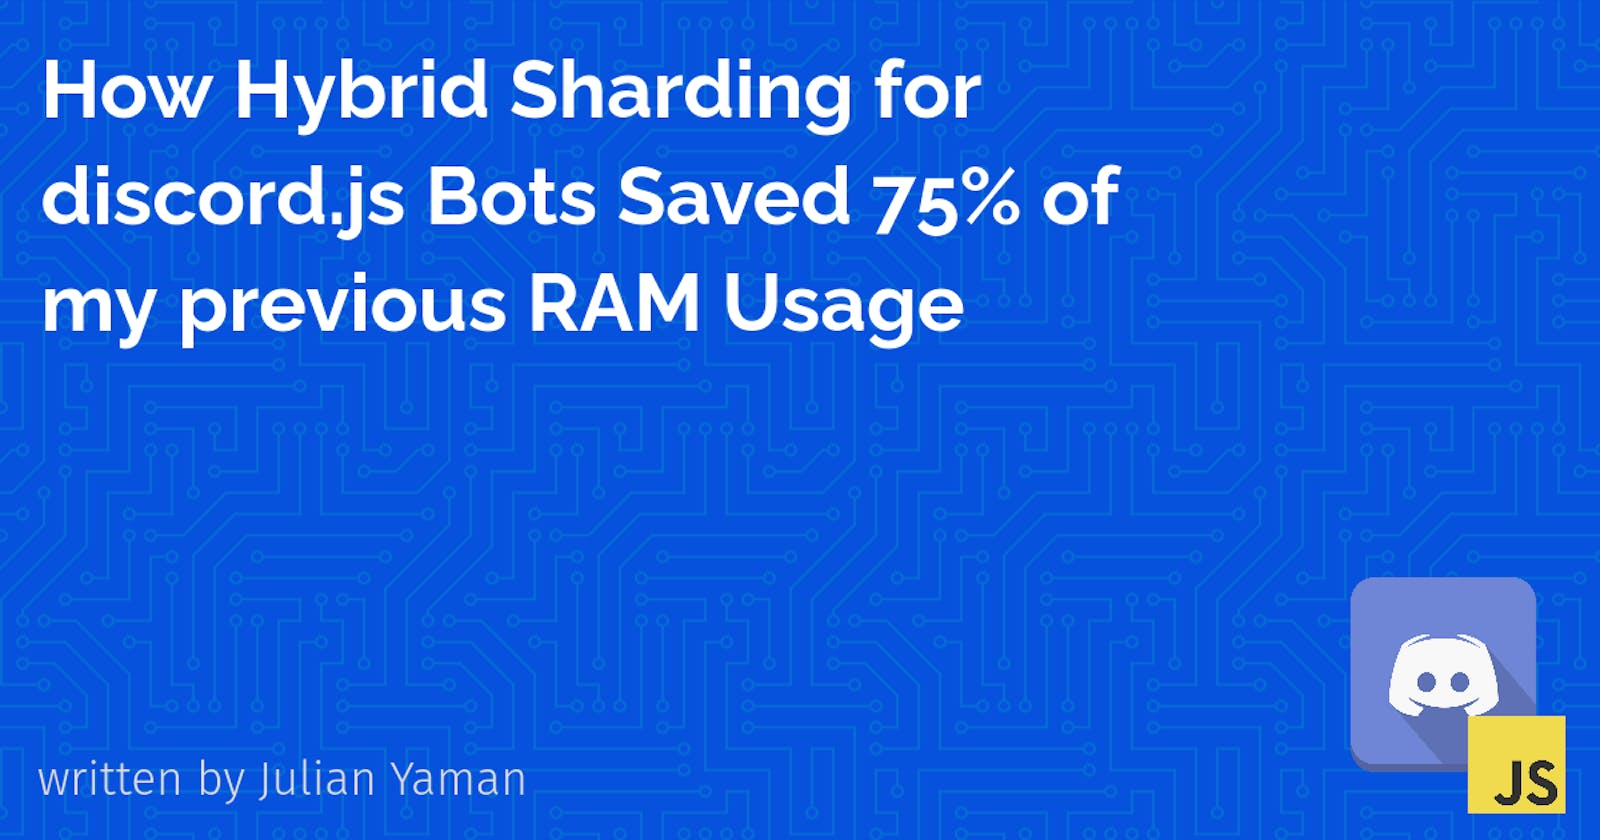 How Hybrid Sharding for discord.js Bots Saved 75% of my previous Memory Usage